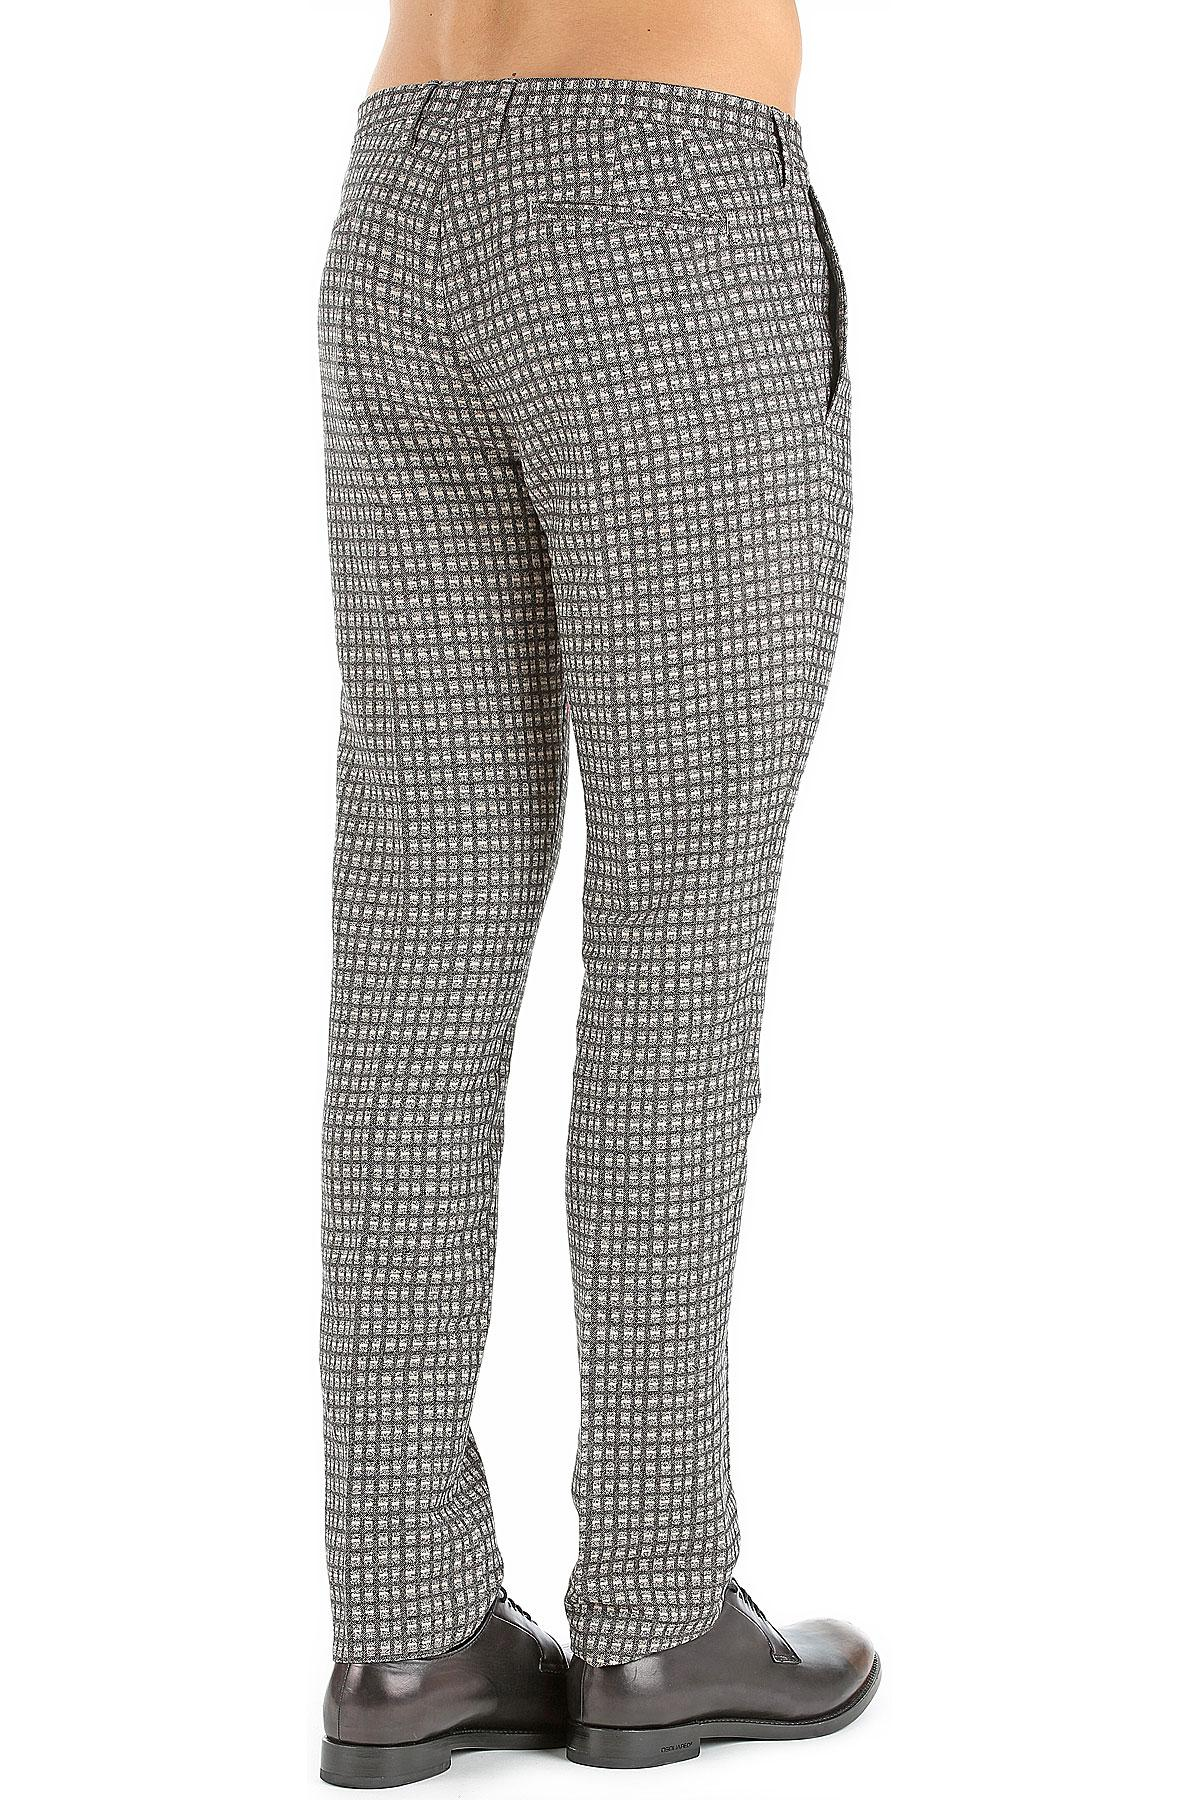 Paul Smith Cotton Clothing For Men in Grey for Men